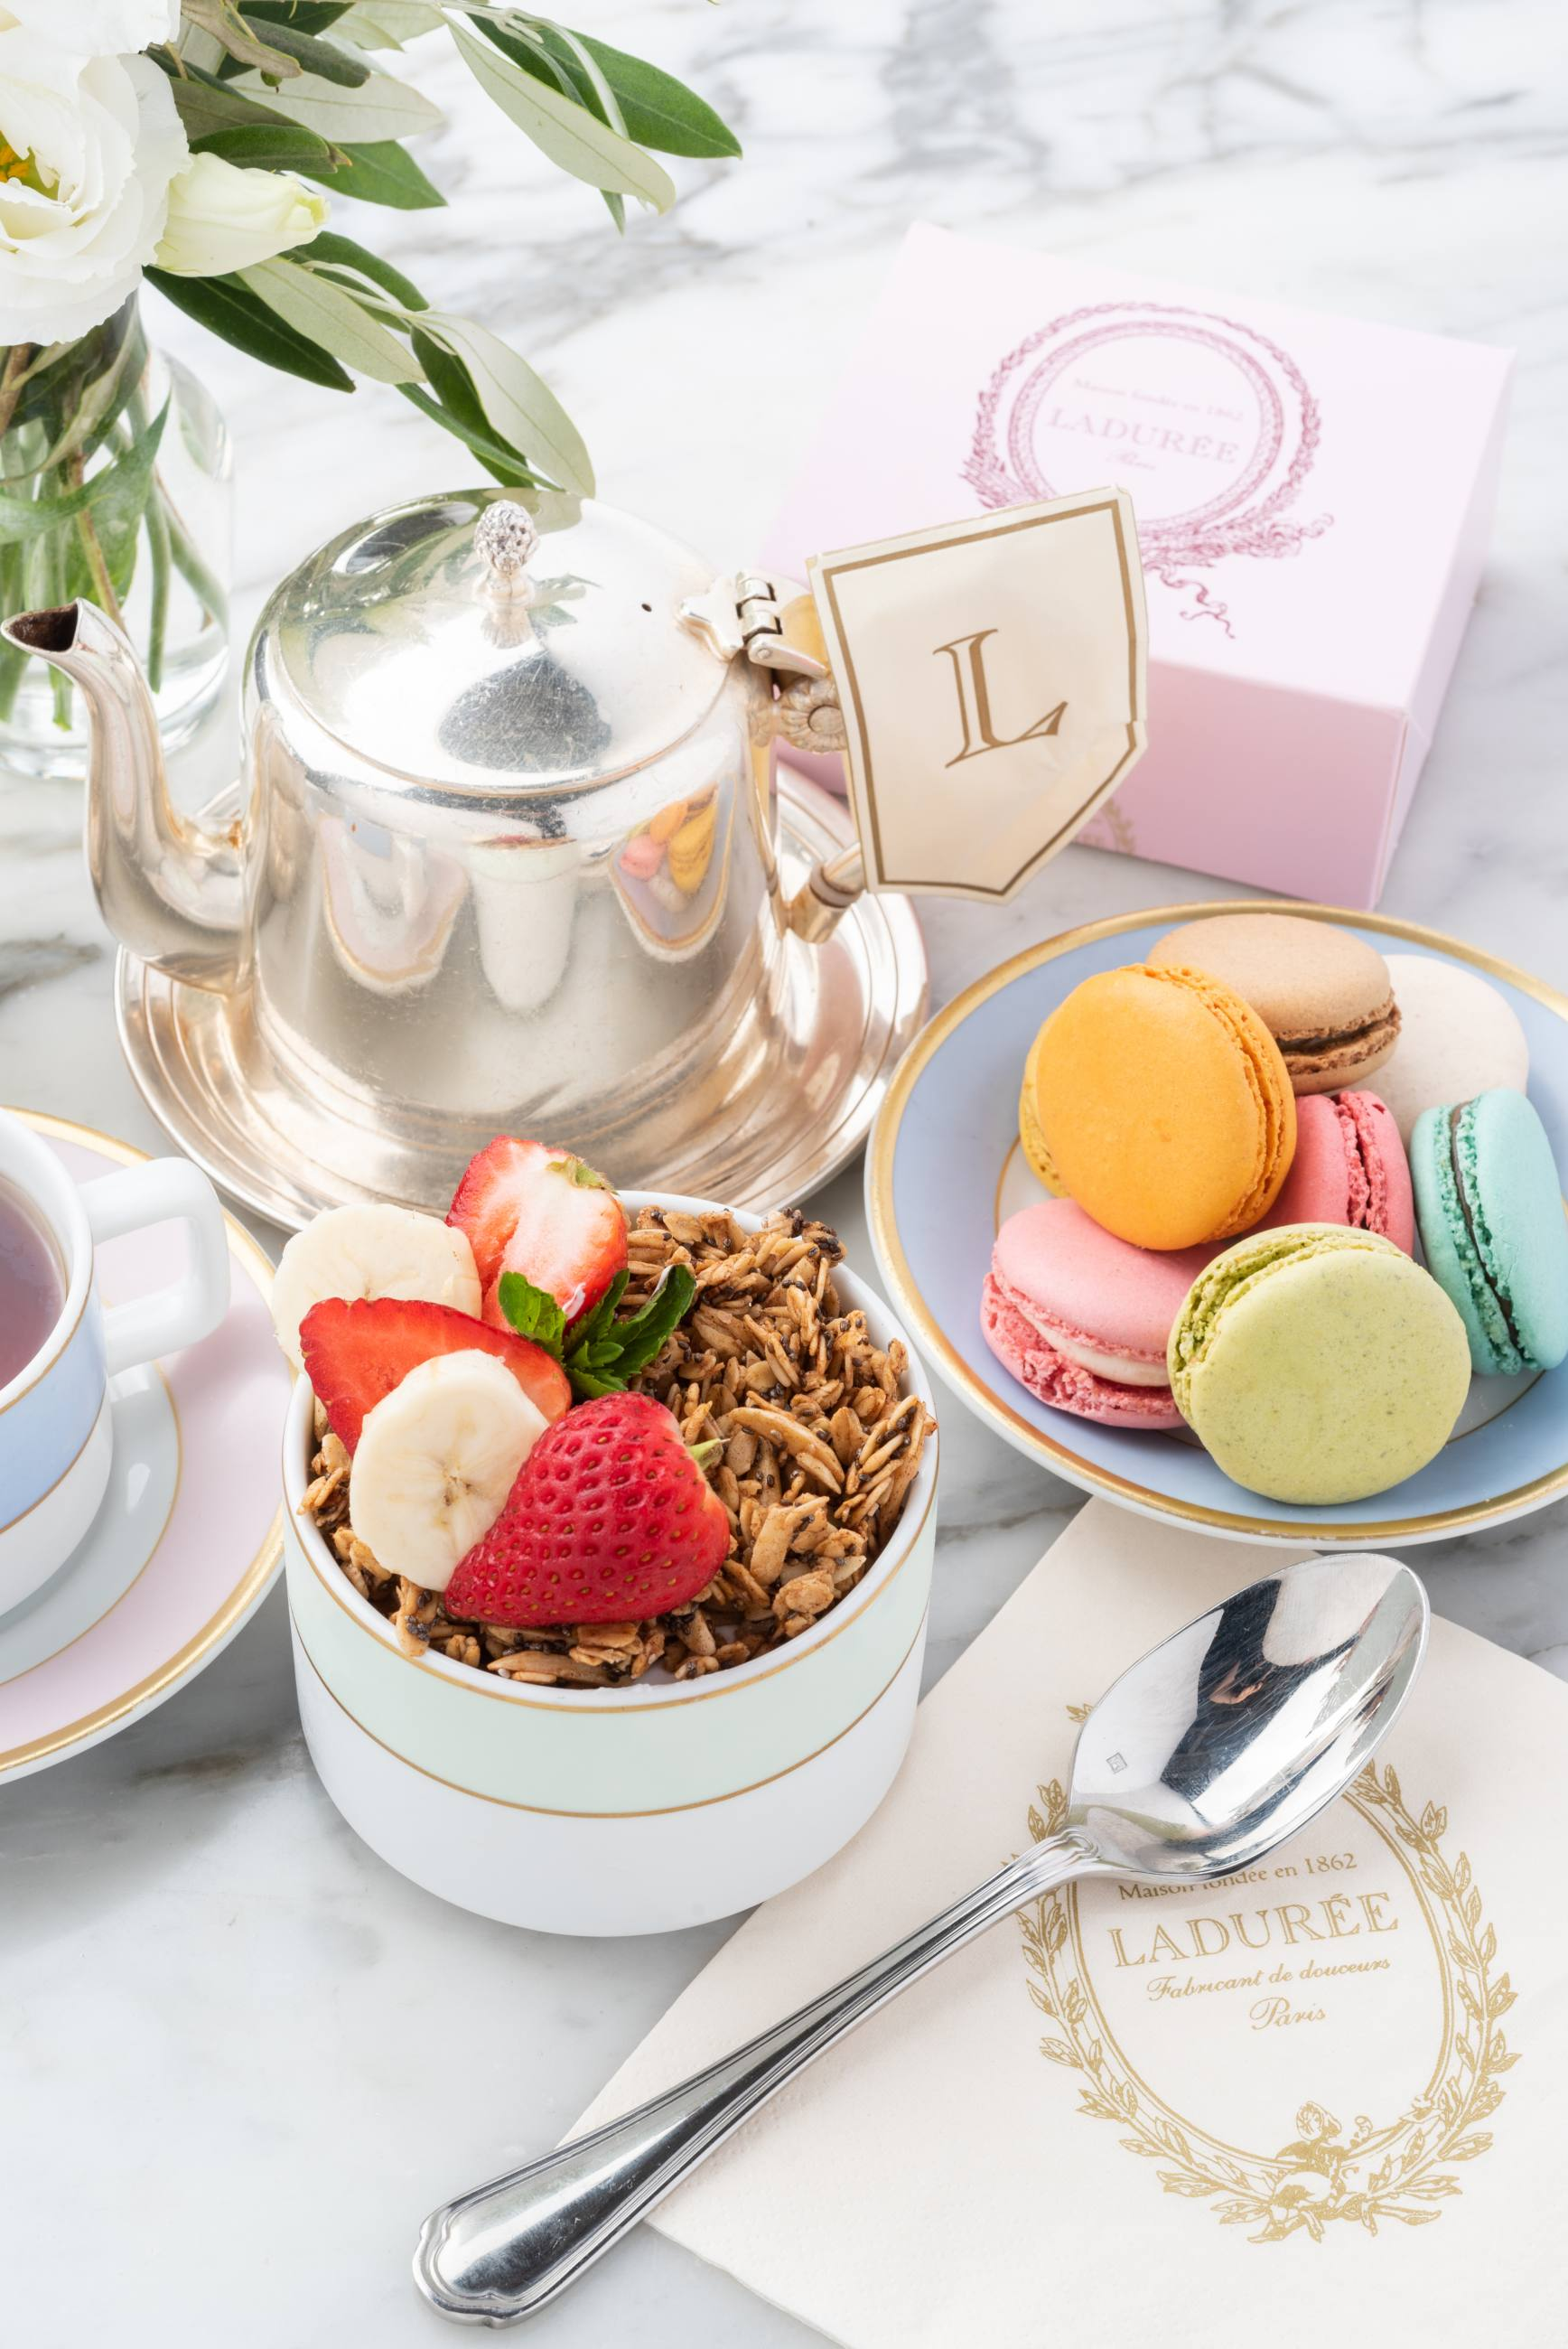 Tea and macarons at Ladurée Beverly Hills